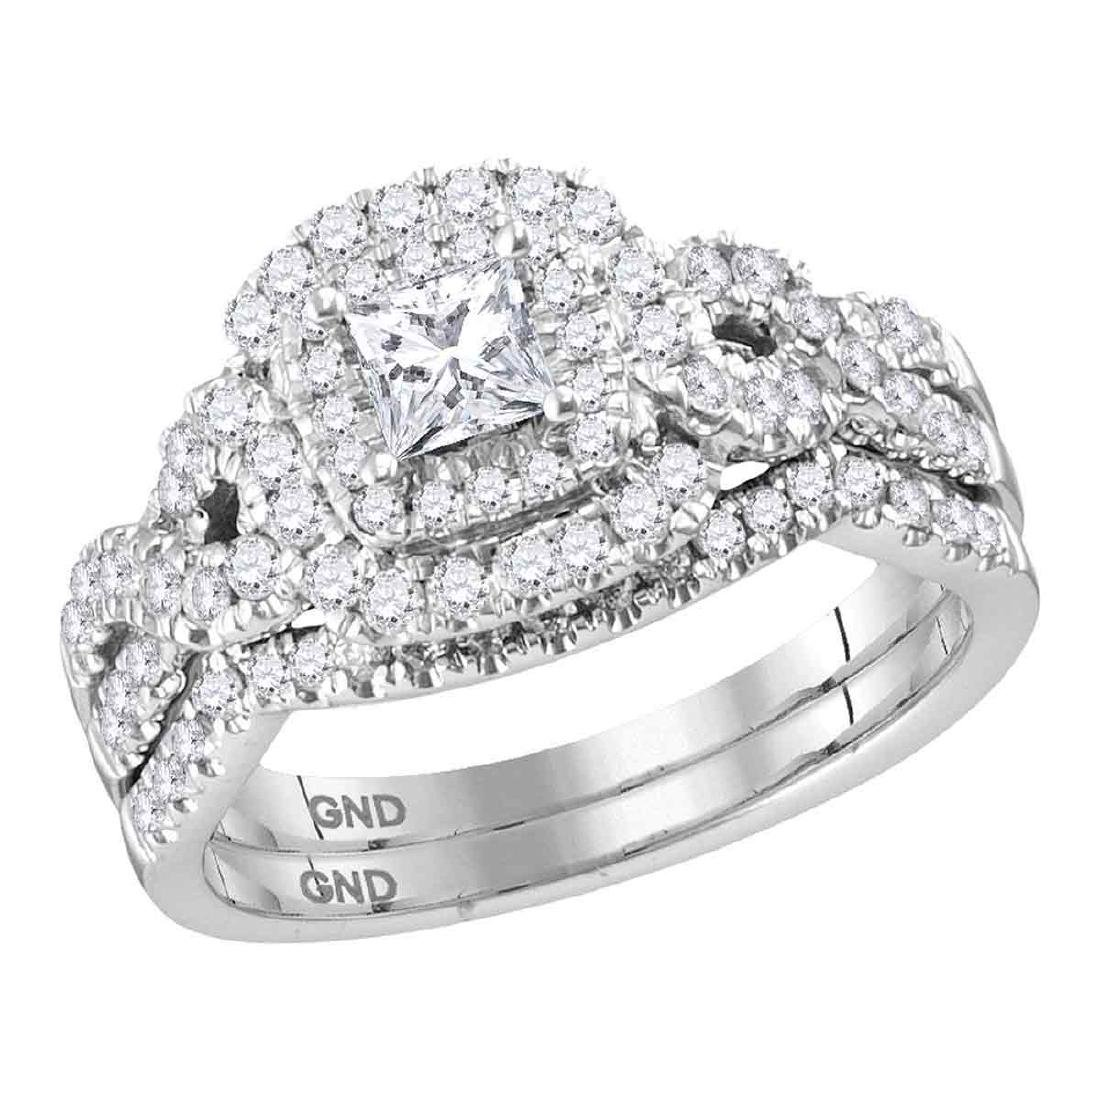 1 CTW Princess Diamond Halo Bridal Engagement Ring 14KT